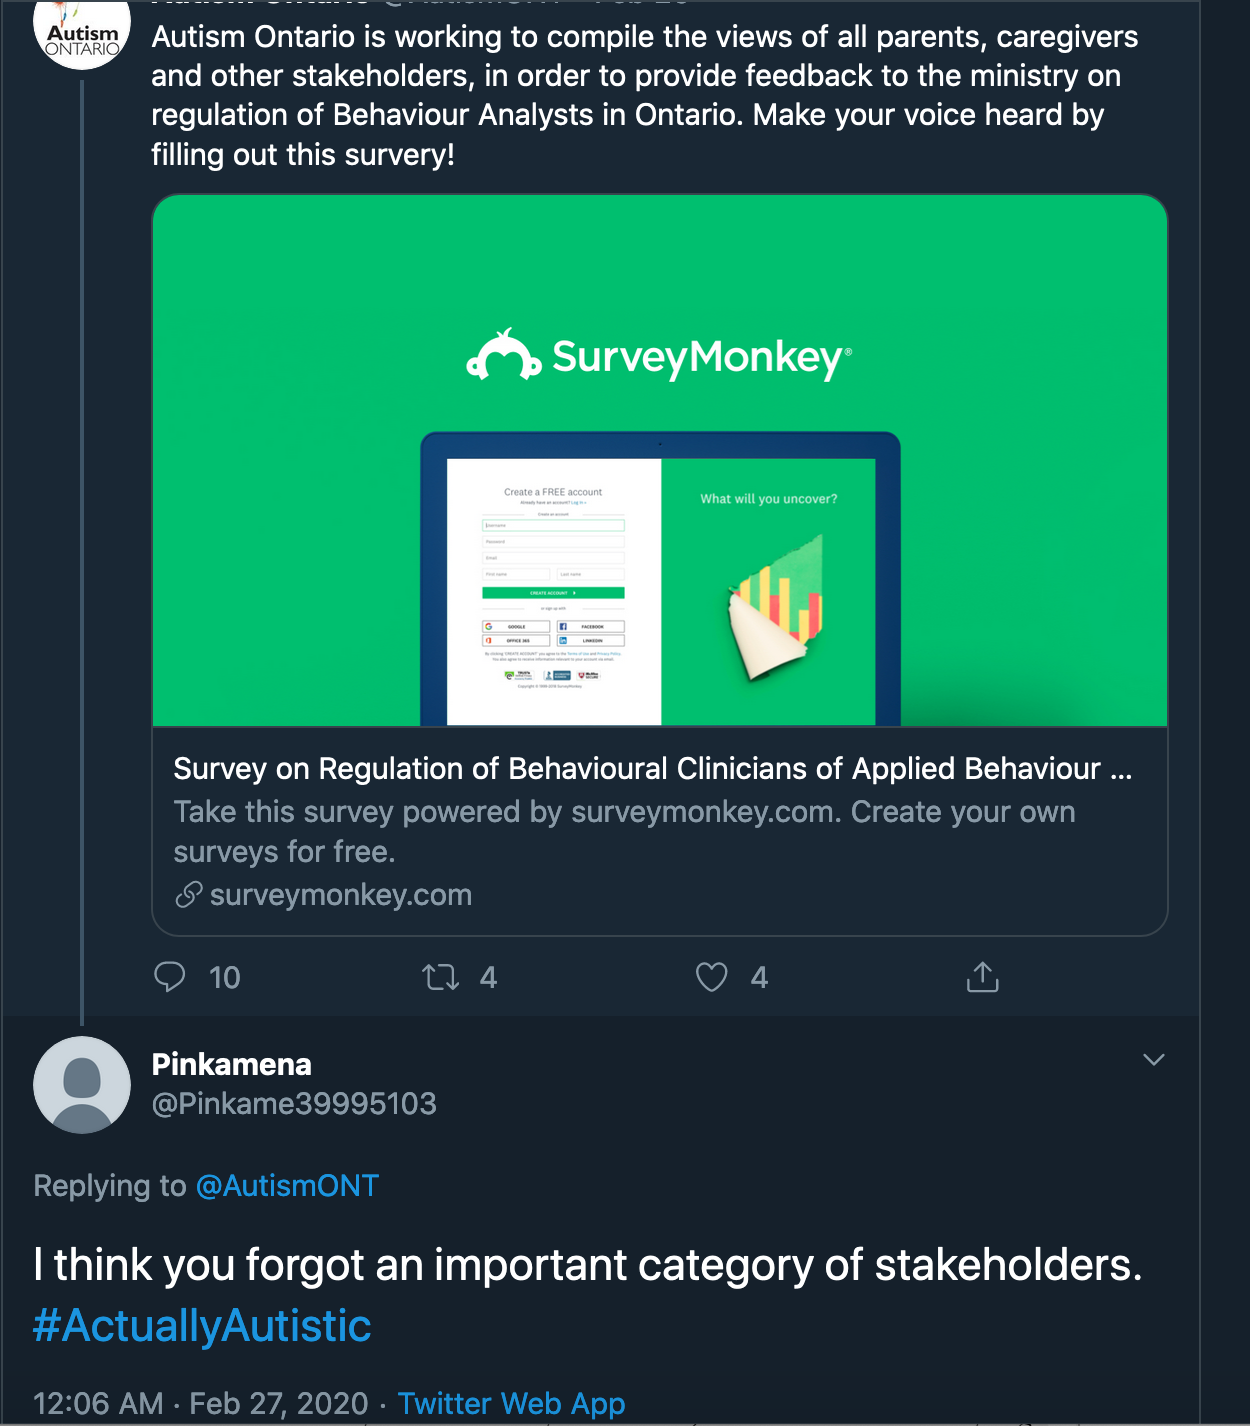 A tweet from Autism Ontario reads: Autism Ontario is working to compile the views of all parents, caregivers and other stakeholders, in order to provide feedback to the ministry on the regulation of Behaviour Analysts in Ontario. Make your voice heard by filling out this survey. Below is a link to a Survey Monkey survey. An answering tweet from @Pinkame39995103 reads I think you forgot an important category of stakeholders. #ActuallyAutistic